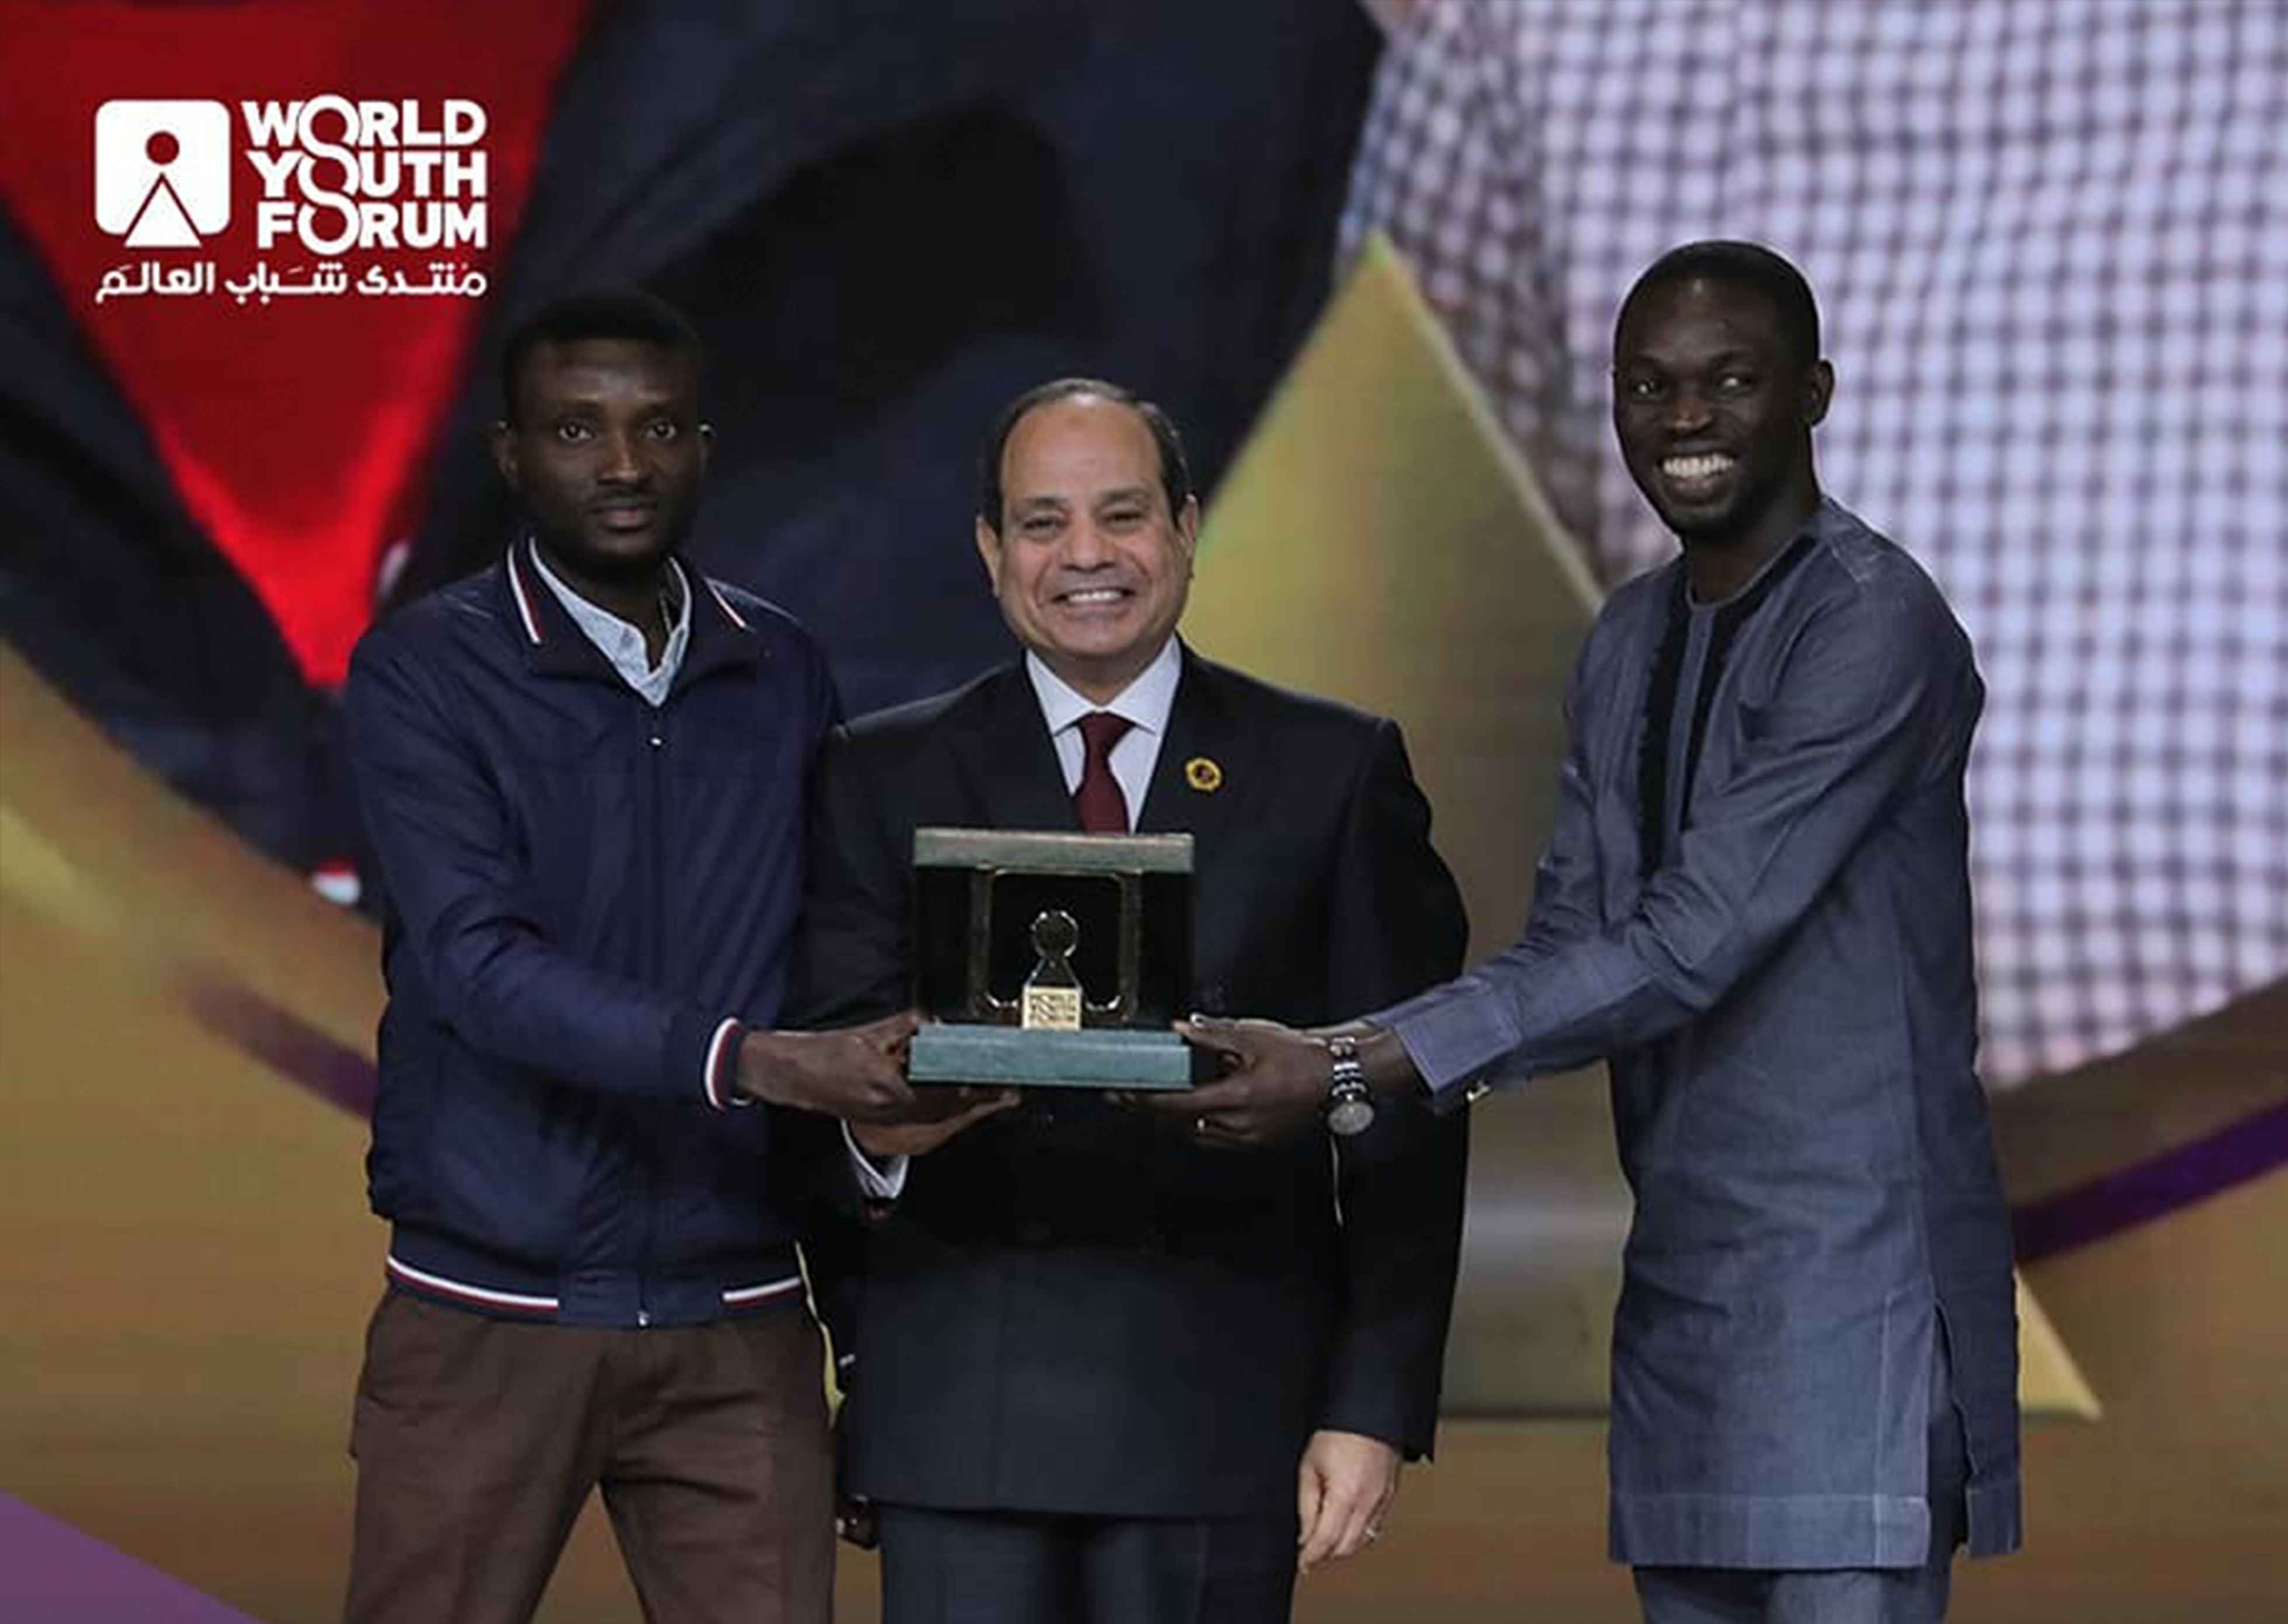 Egyptian President honours African App Launchpad Cup winner in WYF 2019.